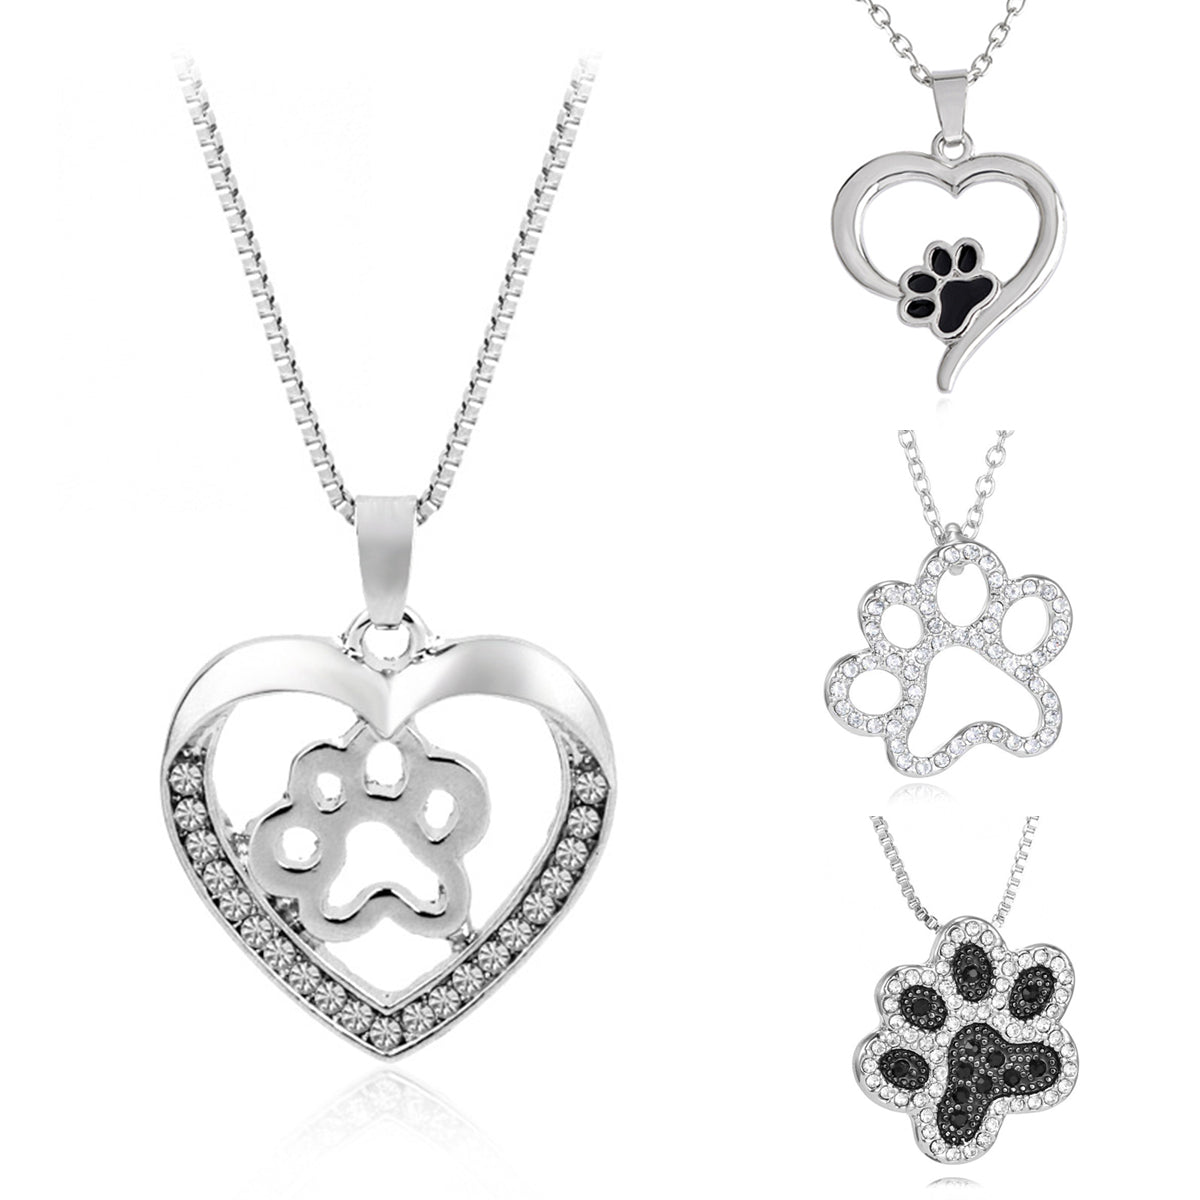 Rhinestone paw print pendant necklace k9 state of mind rhinestone paw print pendant necklace aloadofball Image collections